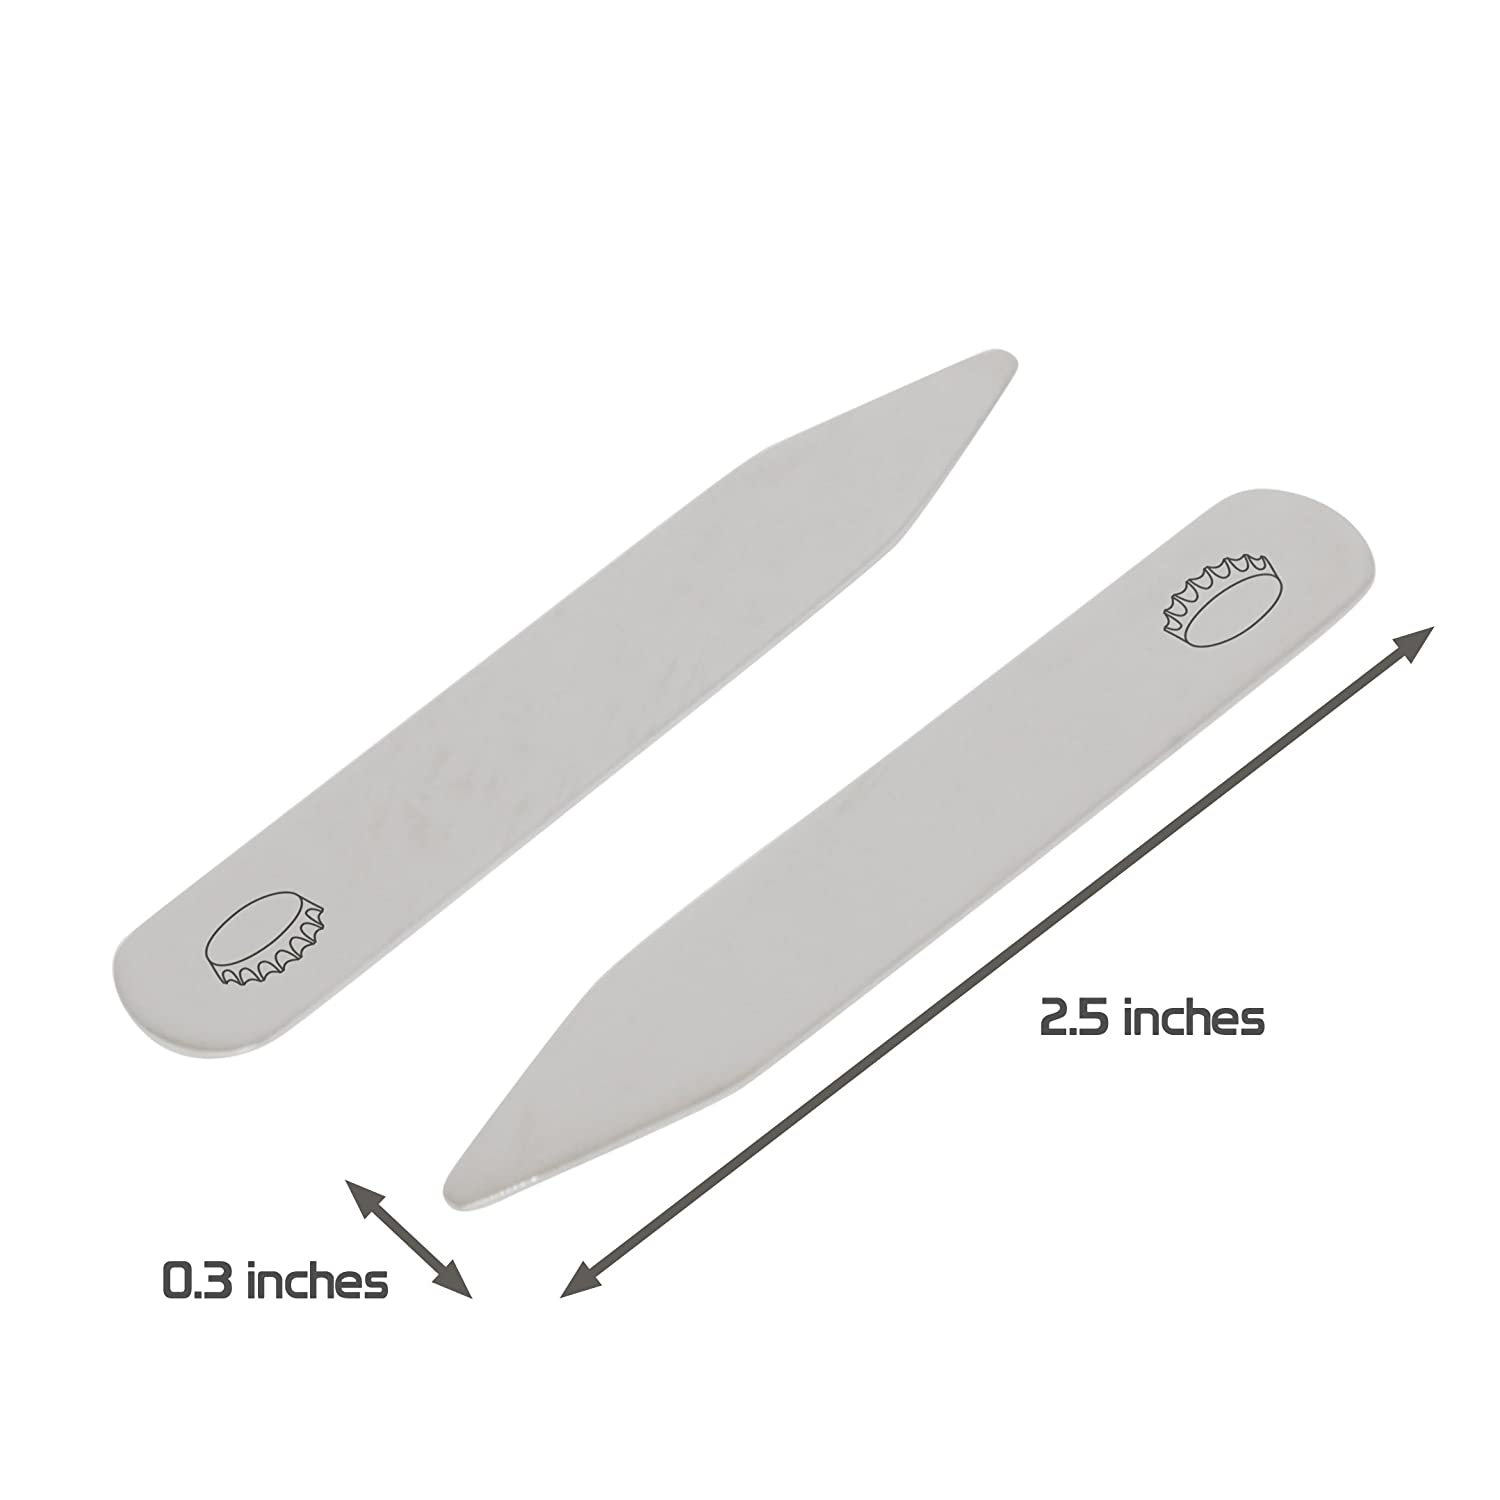 Made In USA 2.5 Inch Metal Collar Stiffeners MODERN GOODS SHOP Stainless Steel Collar Stays With Laser Engraved Bottle Cap Design